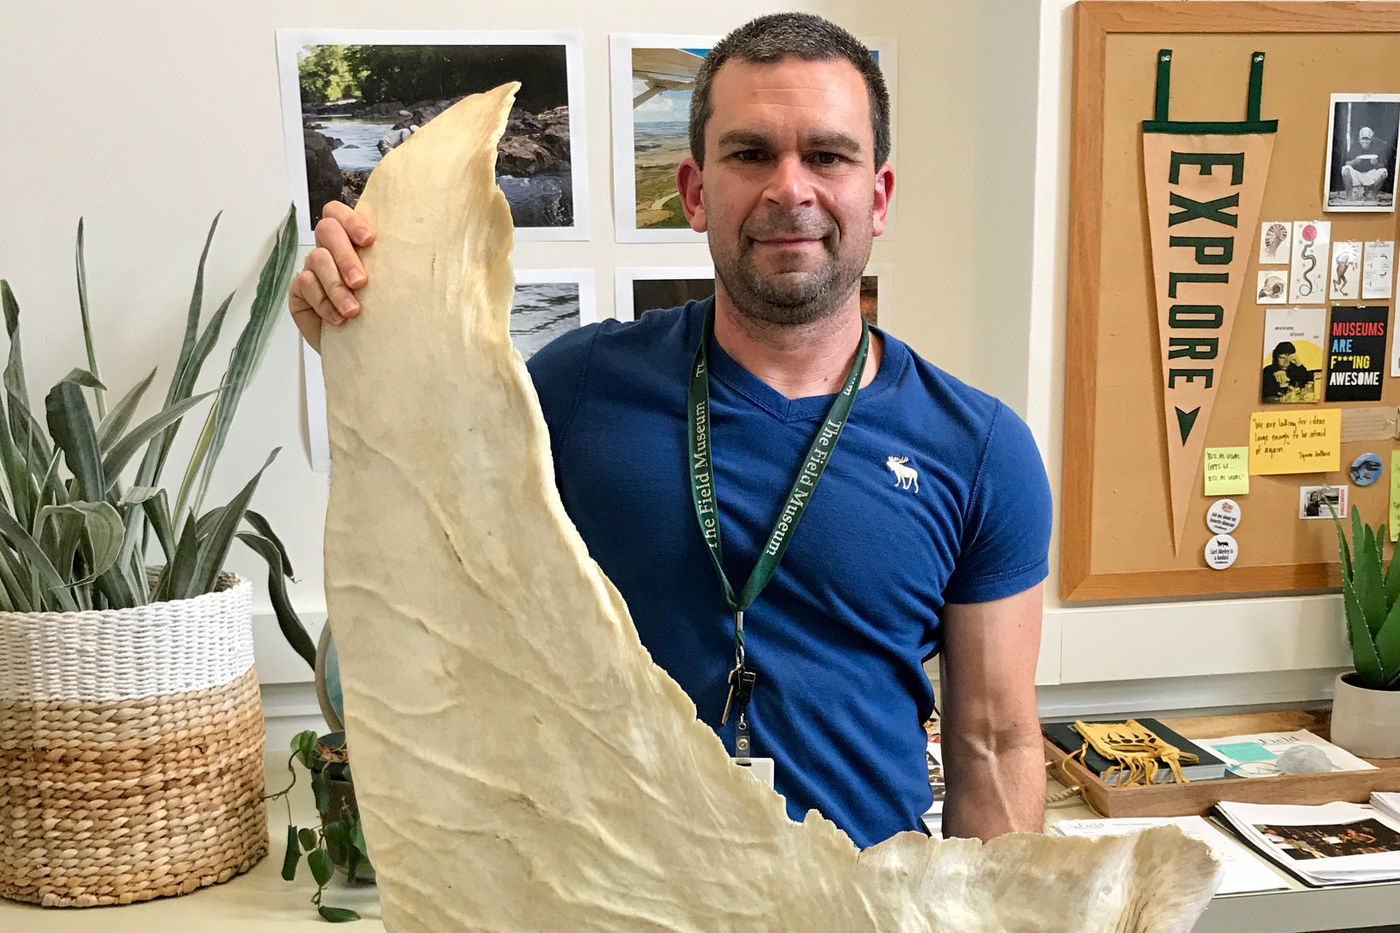 A man holds a large white, dried shark fin, which appears about two feel tall. The background is of an office that has a few plants and natural history-themed images on the walls.